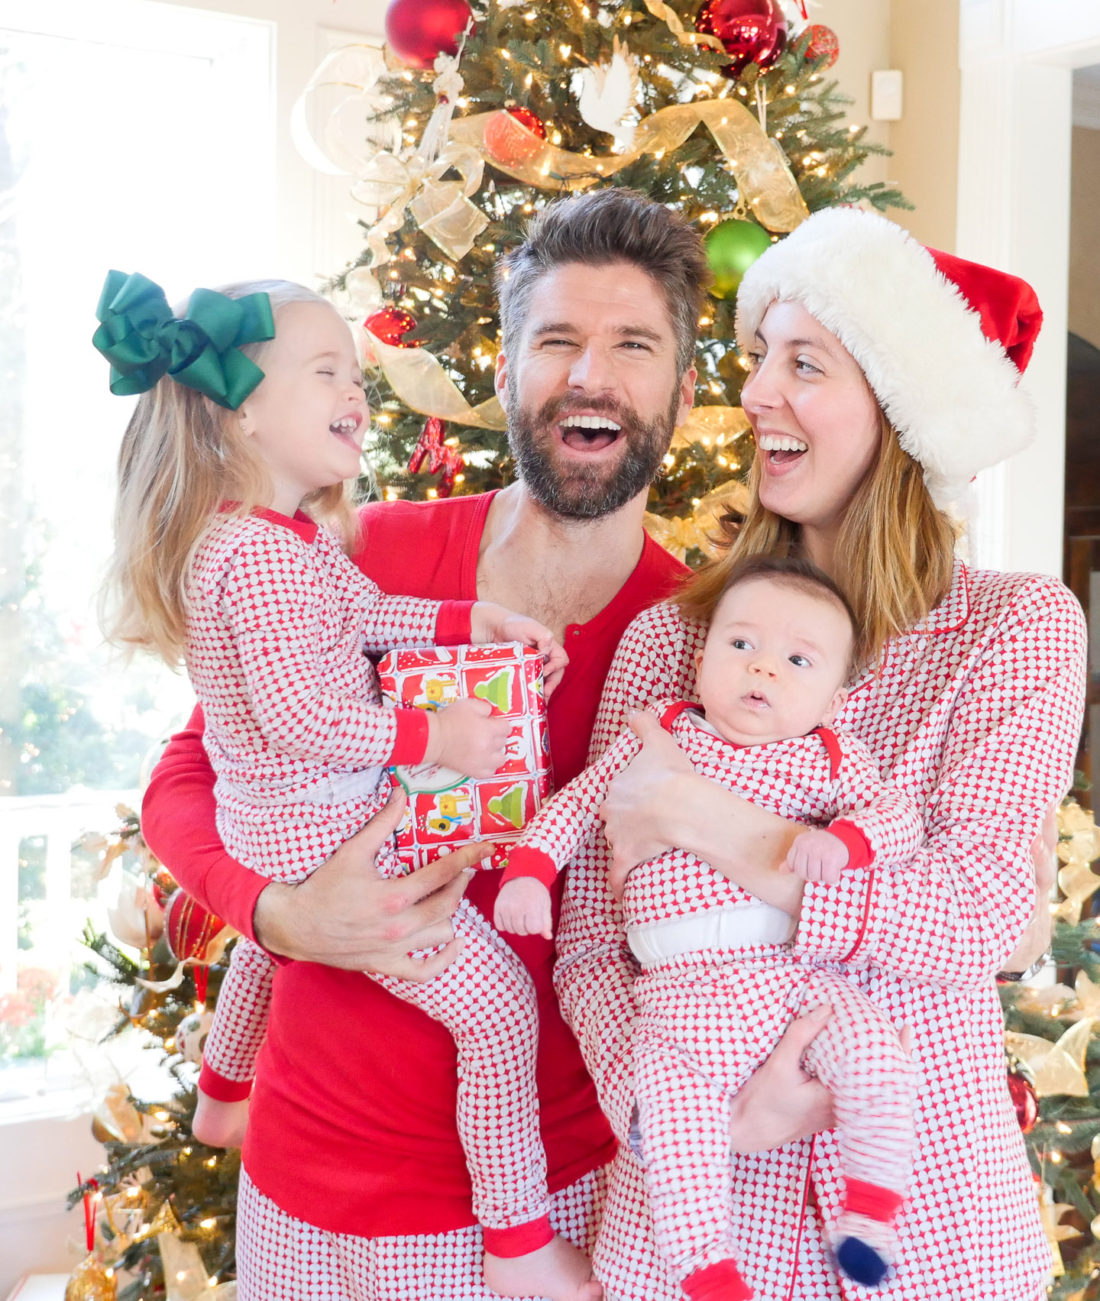 Eva Amurri Martino and her family celebrate the Christmas Holiday in matching pajamas